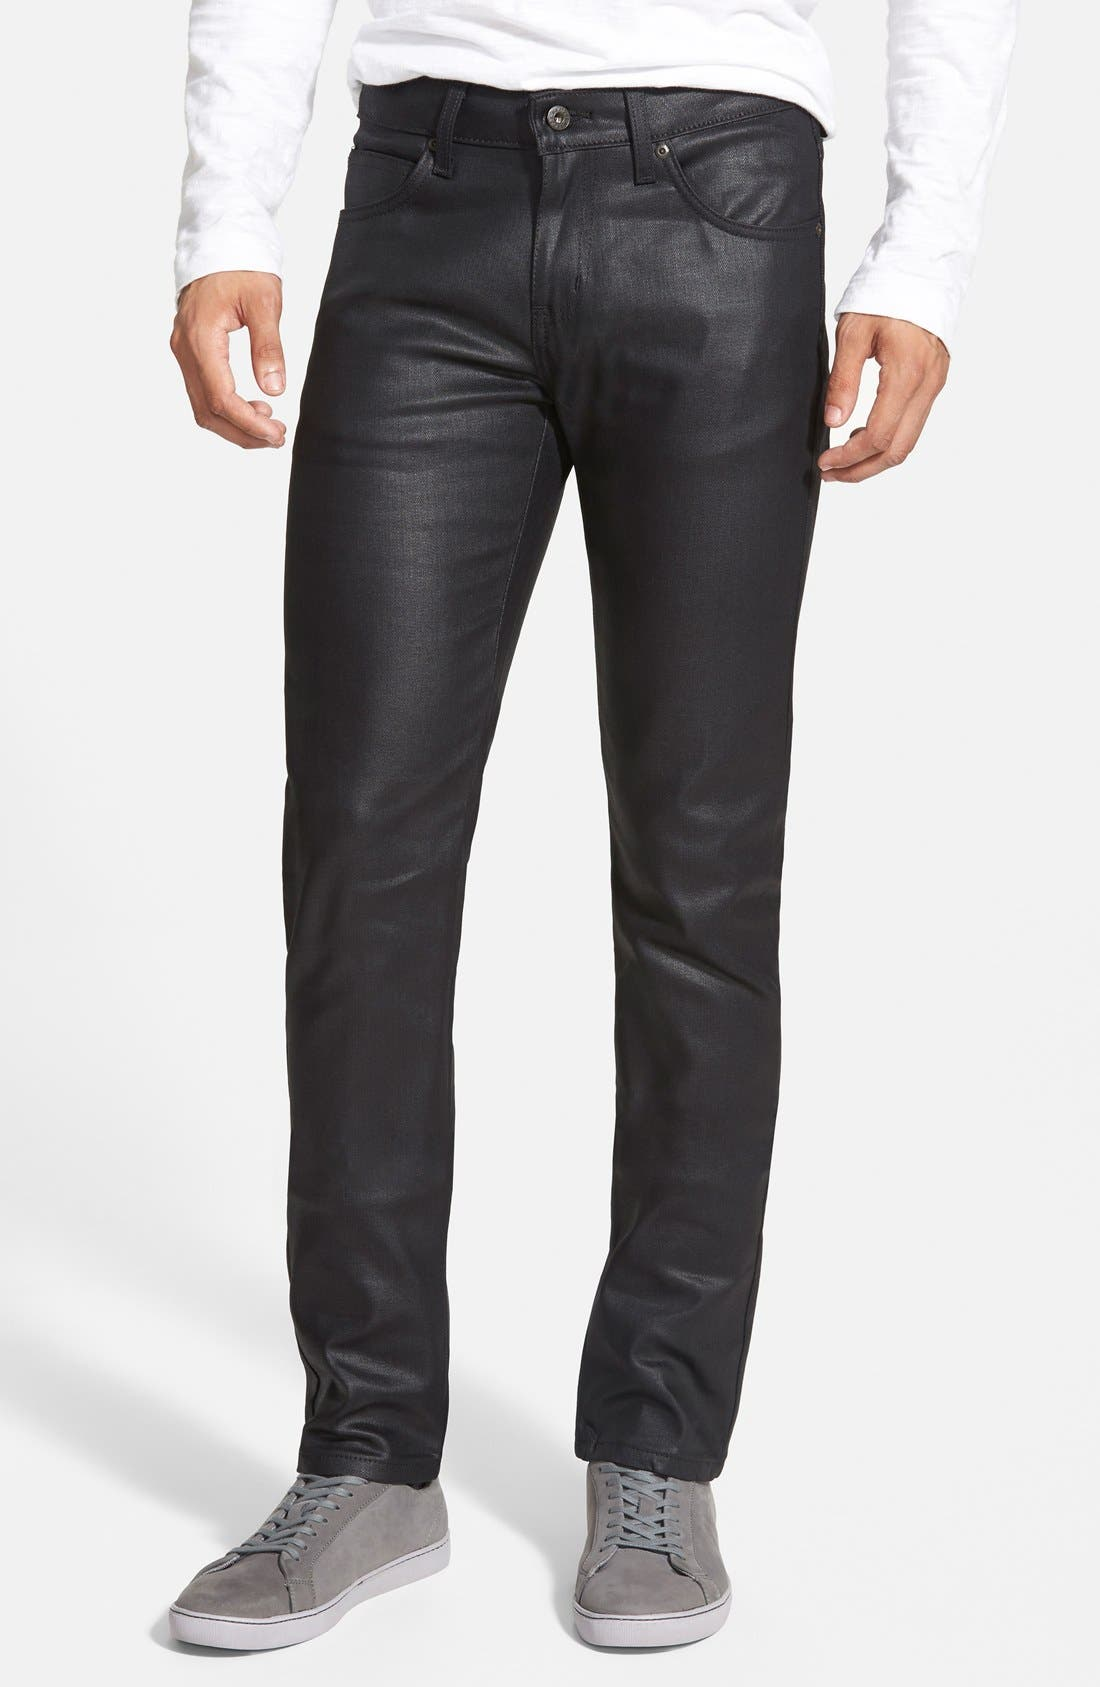 Main Image - Naked & Famous Denim Super Skinny Guy Skinny Stretch Jeans (Black)